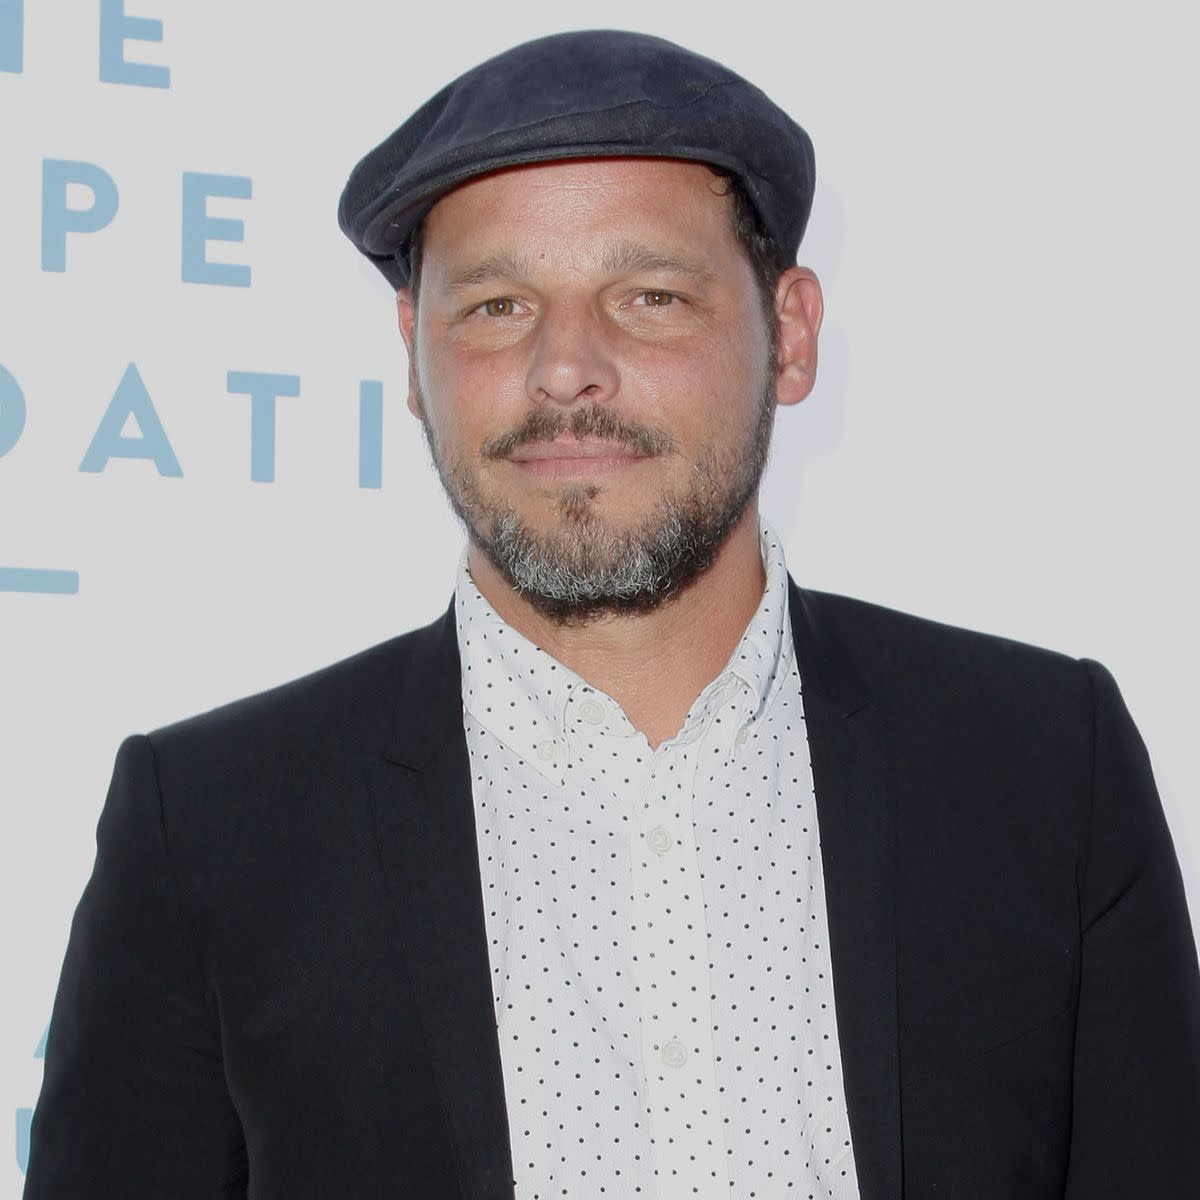 Justin Chambers dressed up